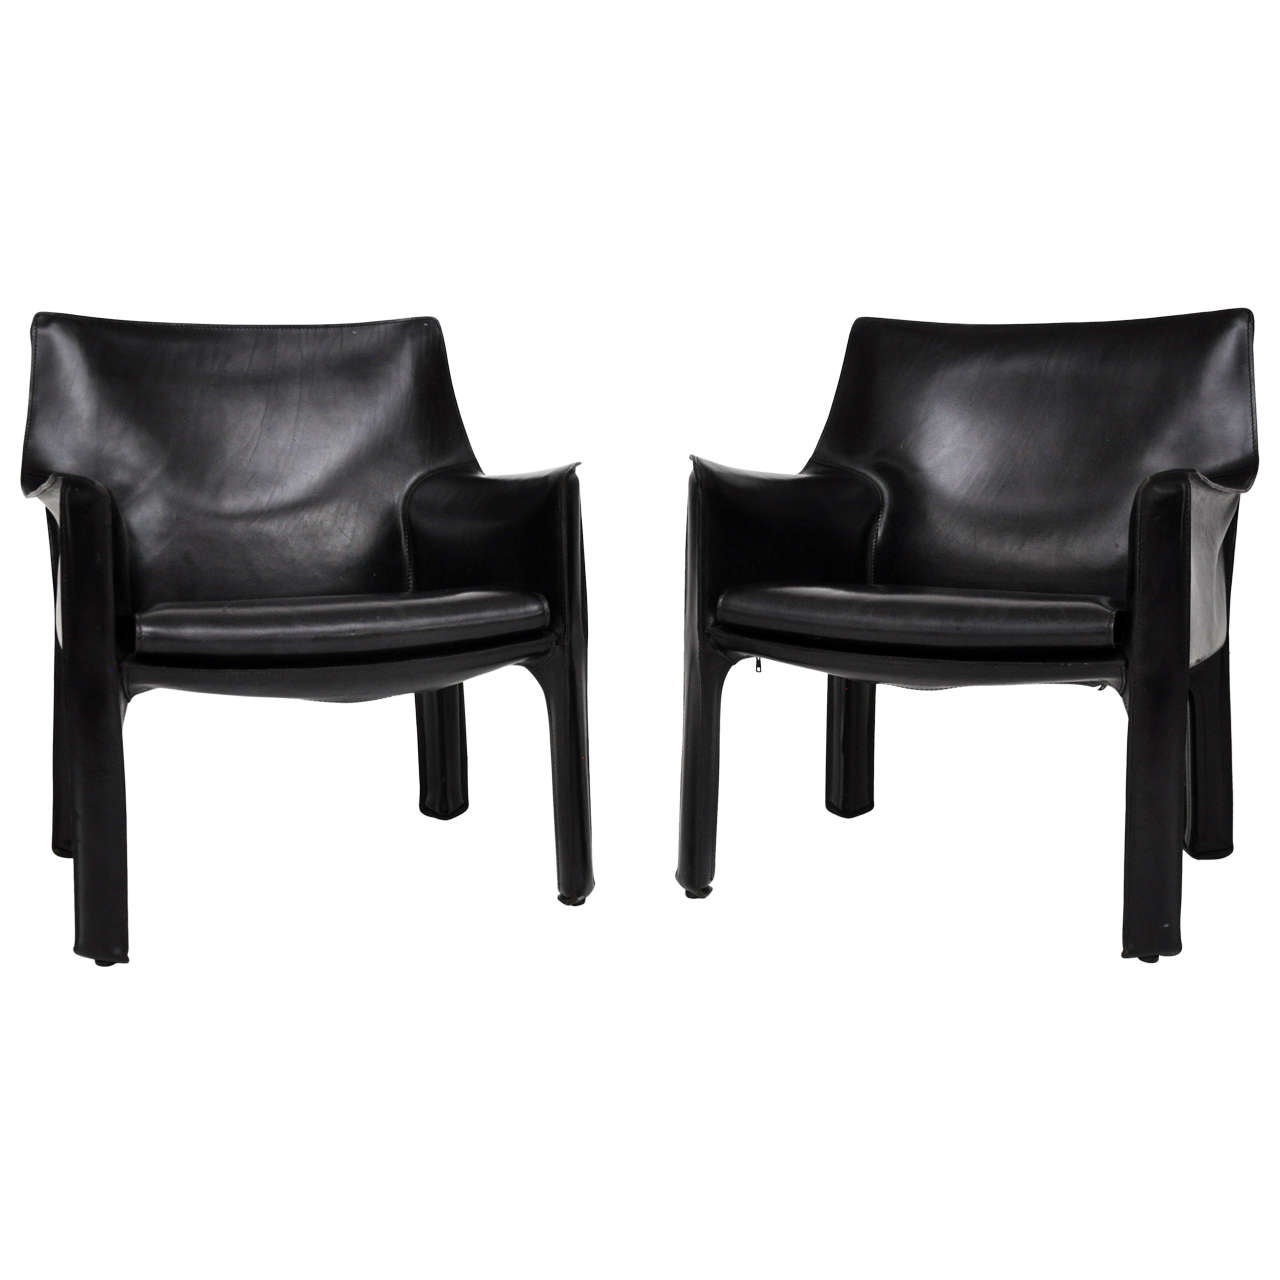 Mario Bellini Cab Lounge Chairs At 1stdibs